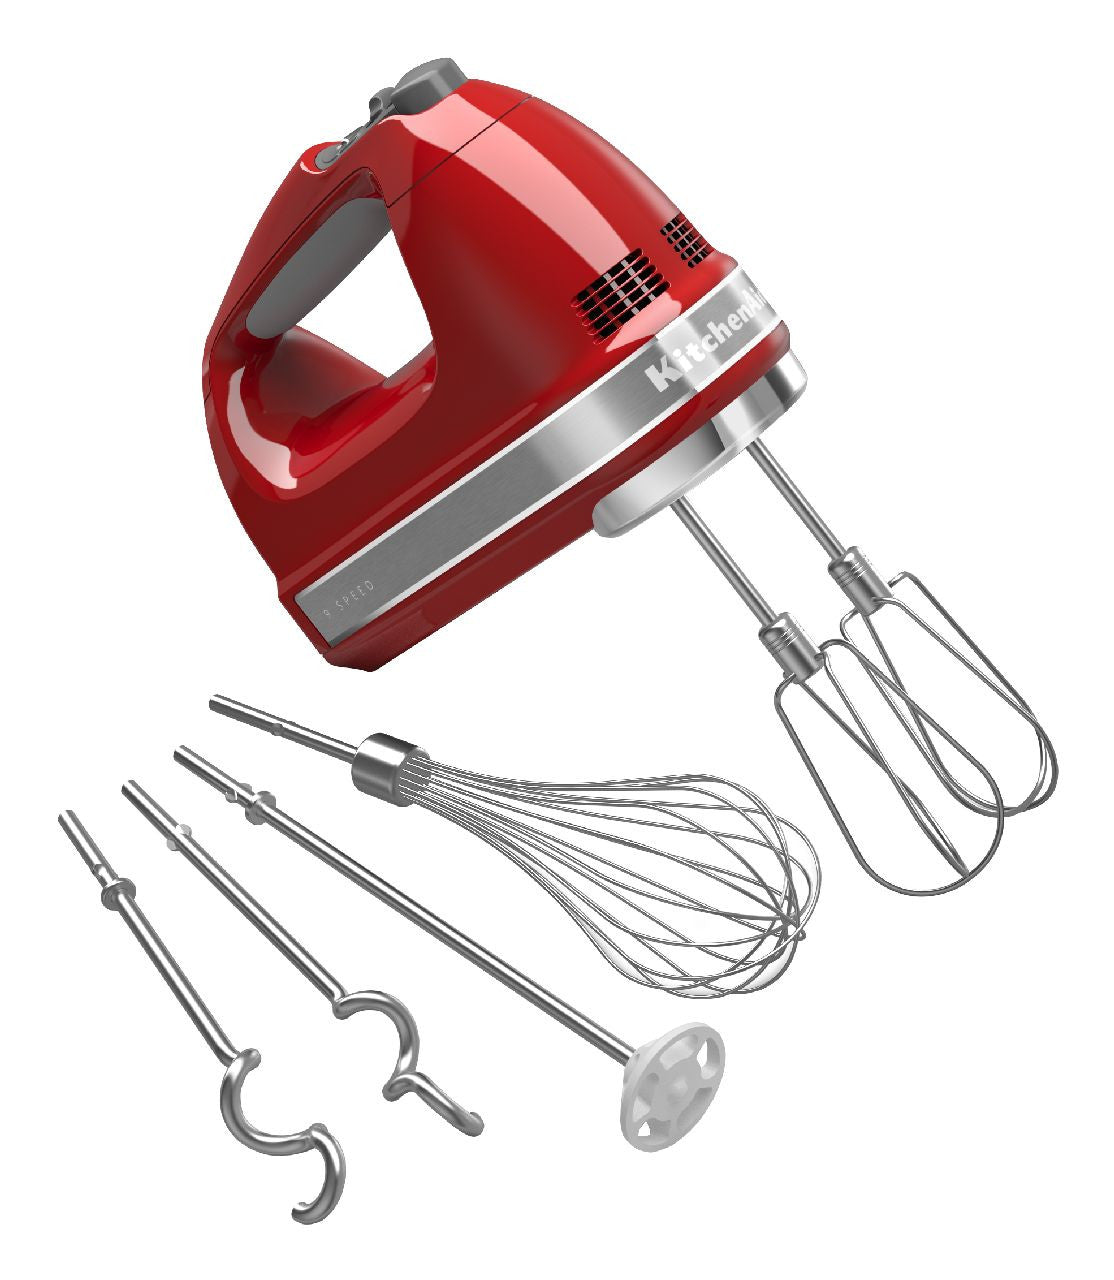 Kitchenaid 9-Speed Digital Hand Mixer - Empire Red KHM926ER